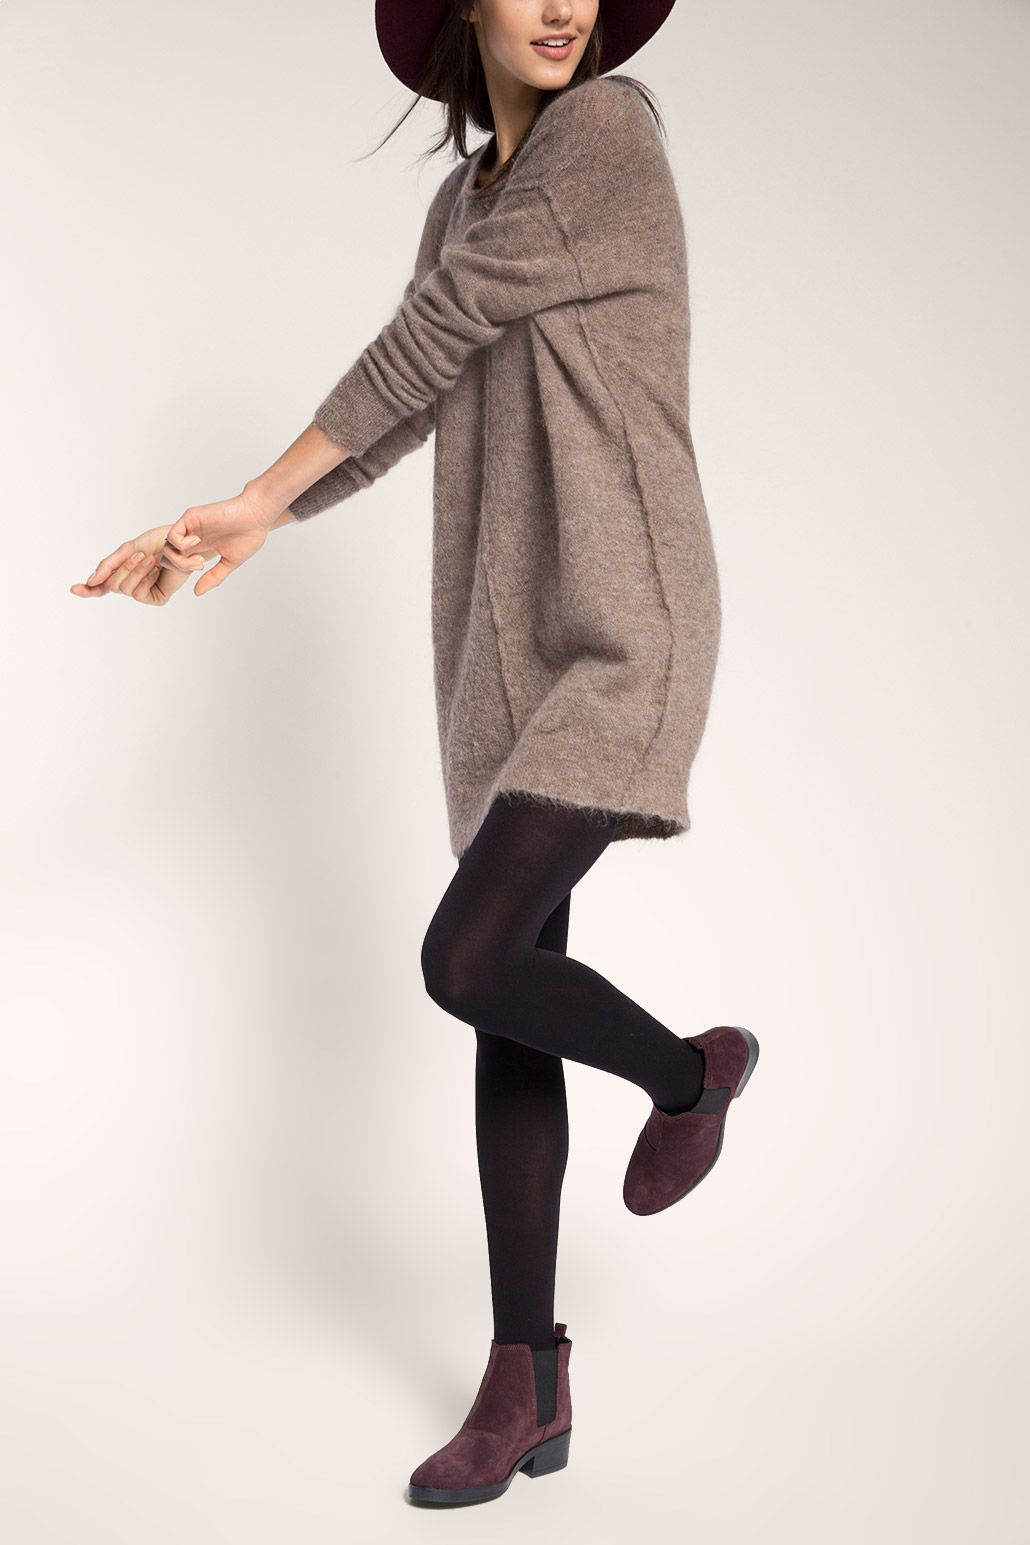 Pullover-Kleid aus Woll-Mix  Braunes outfit, Outfit, Outfit ideen